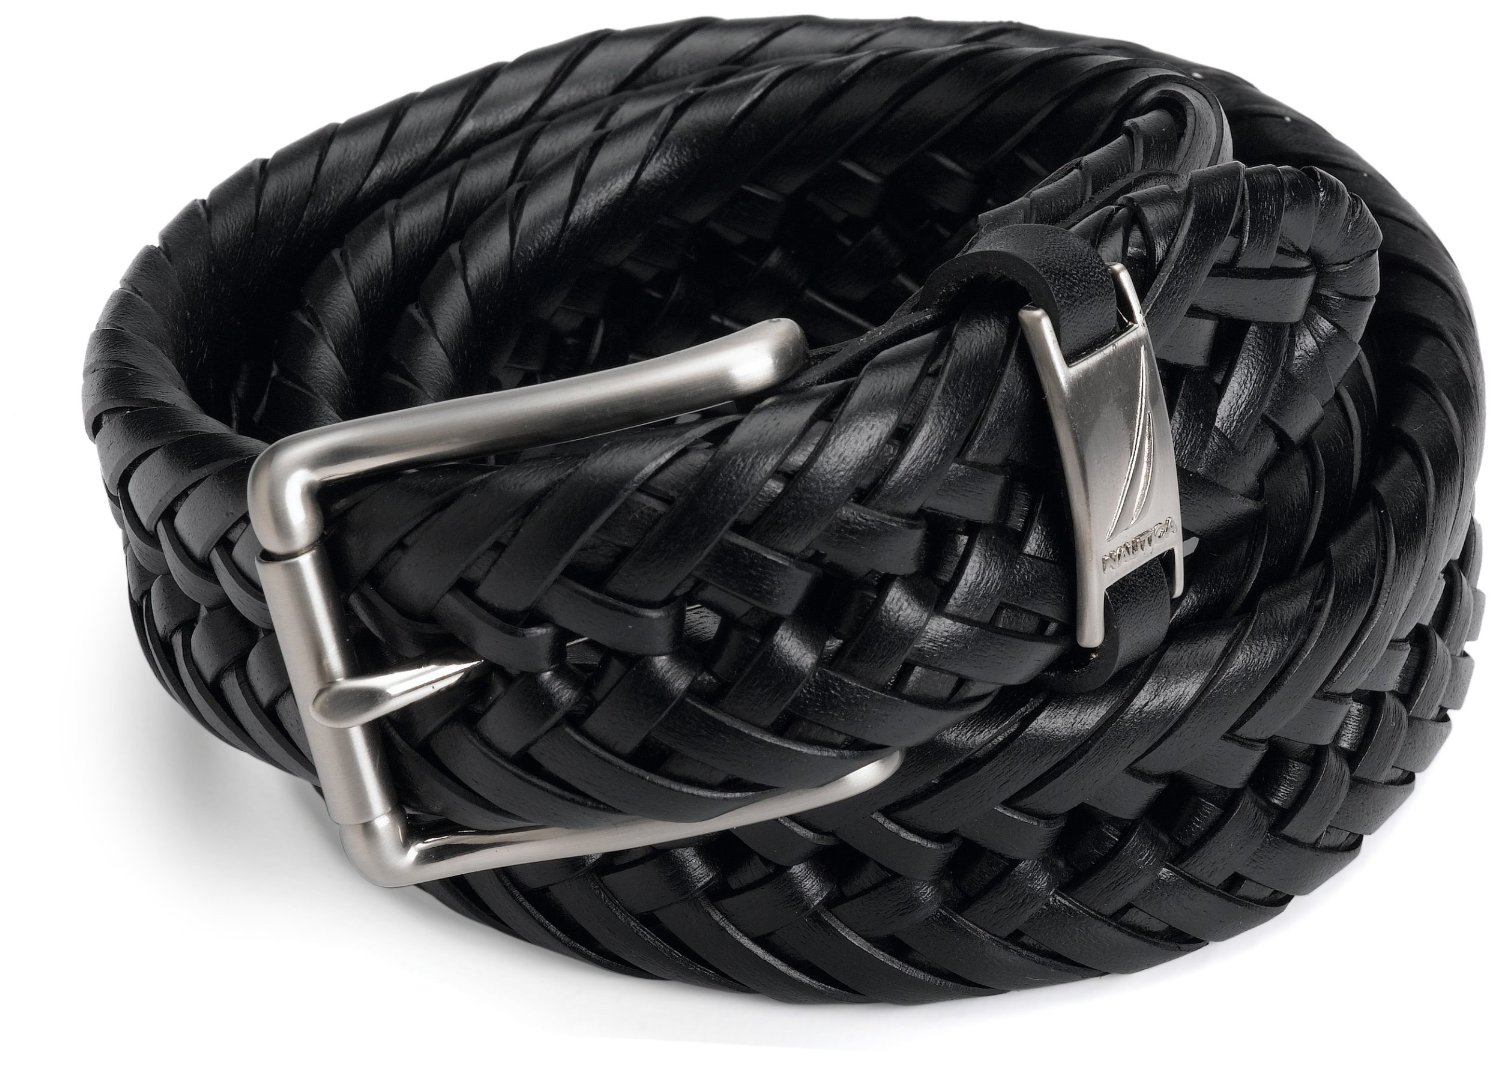 Nautica men's black braided woven weave leather belt size 32 34 36 38 40 42 8426